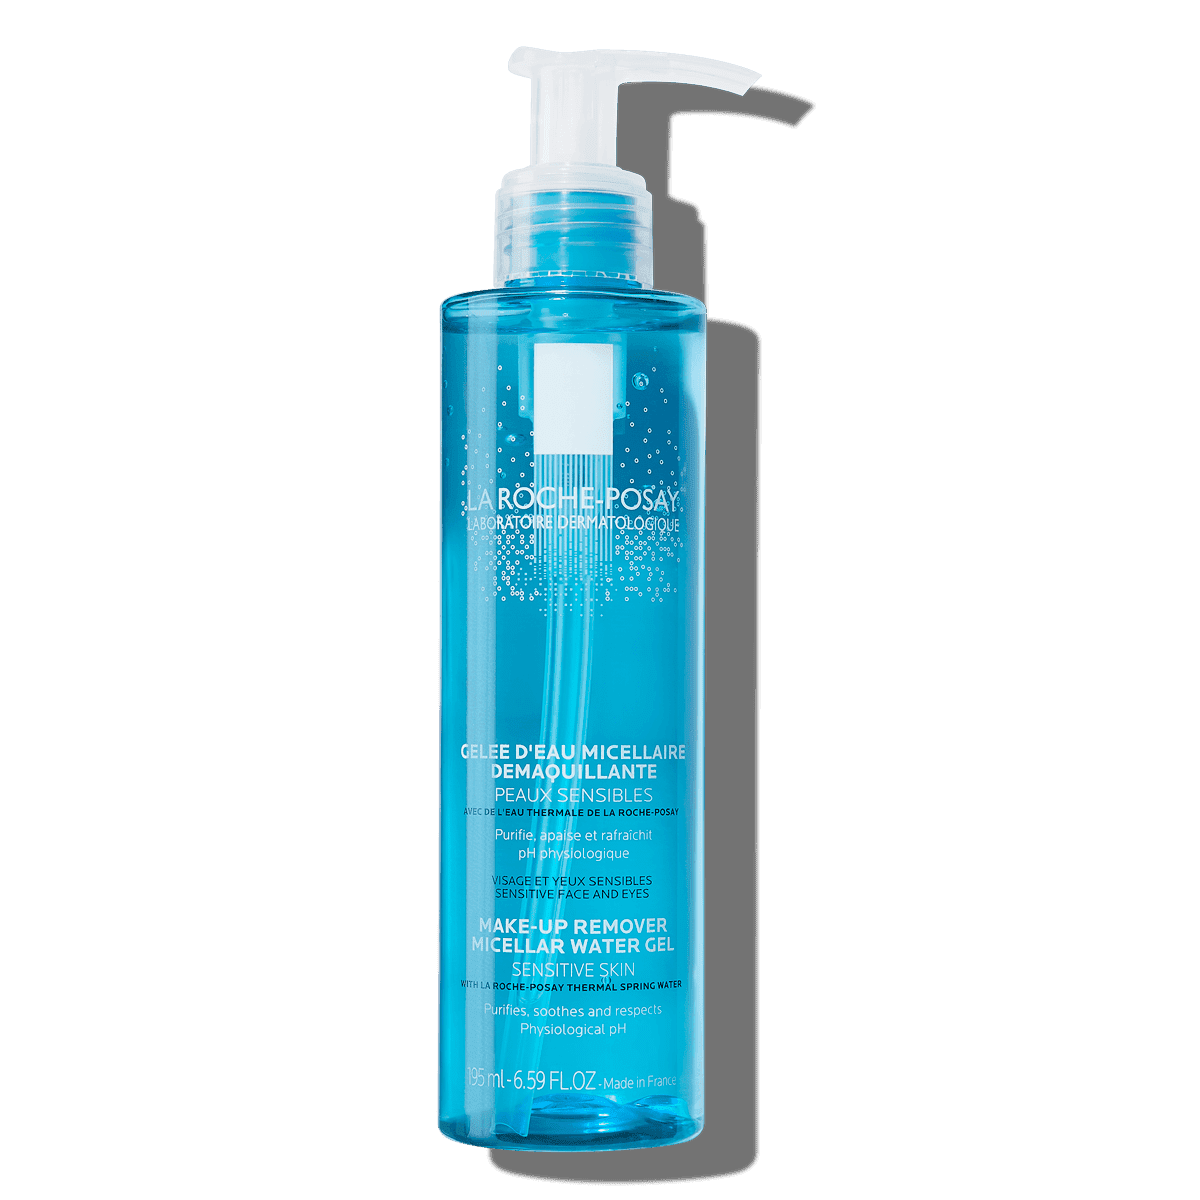 La Roche Posay ProductPage Make Up Remover Micellar Water Gel 195ml 33